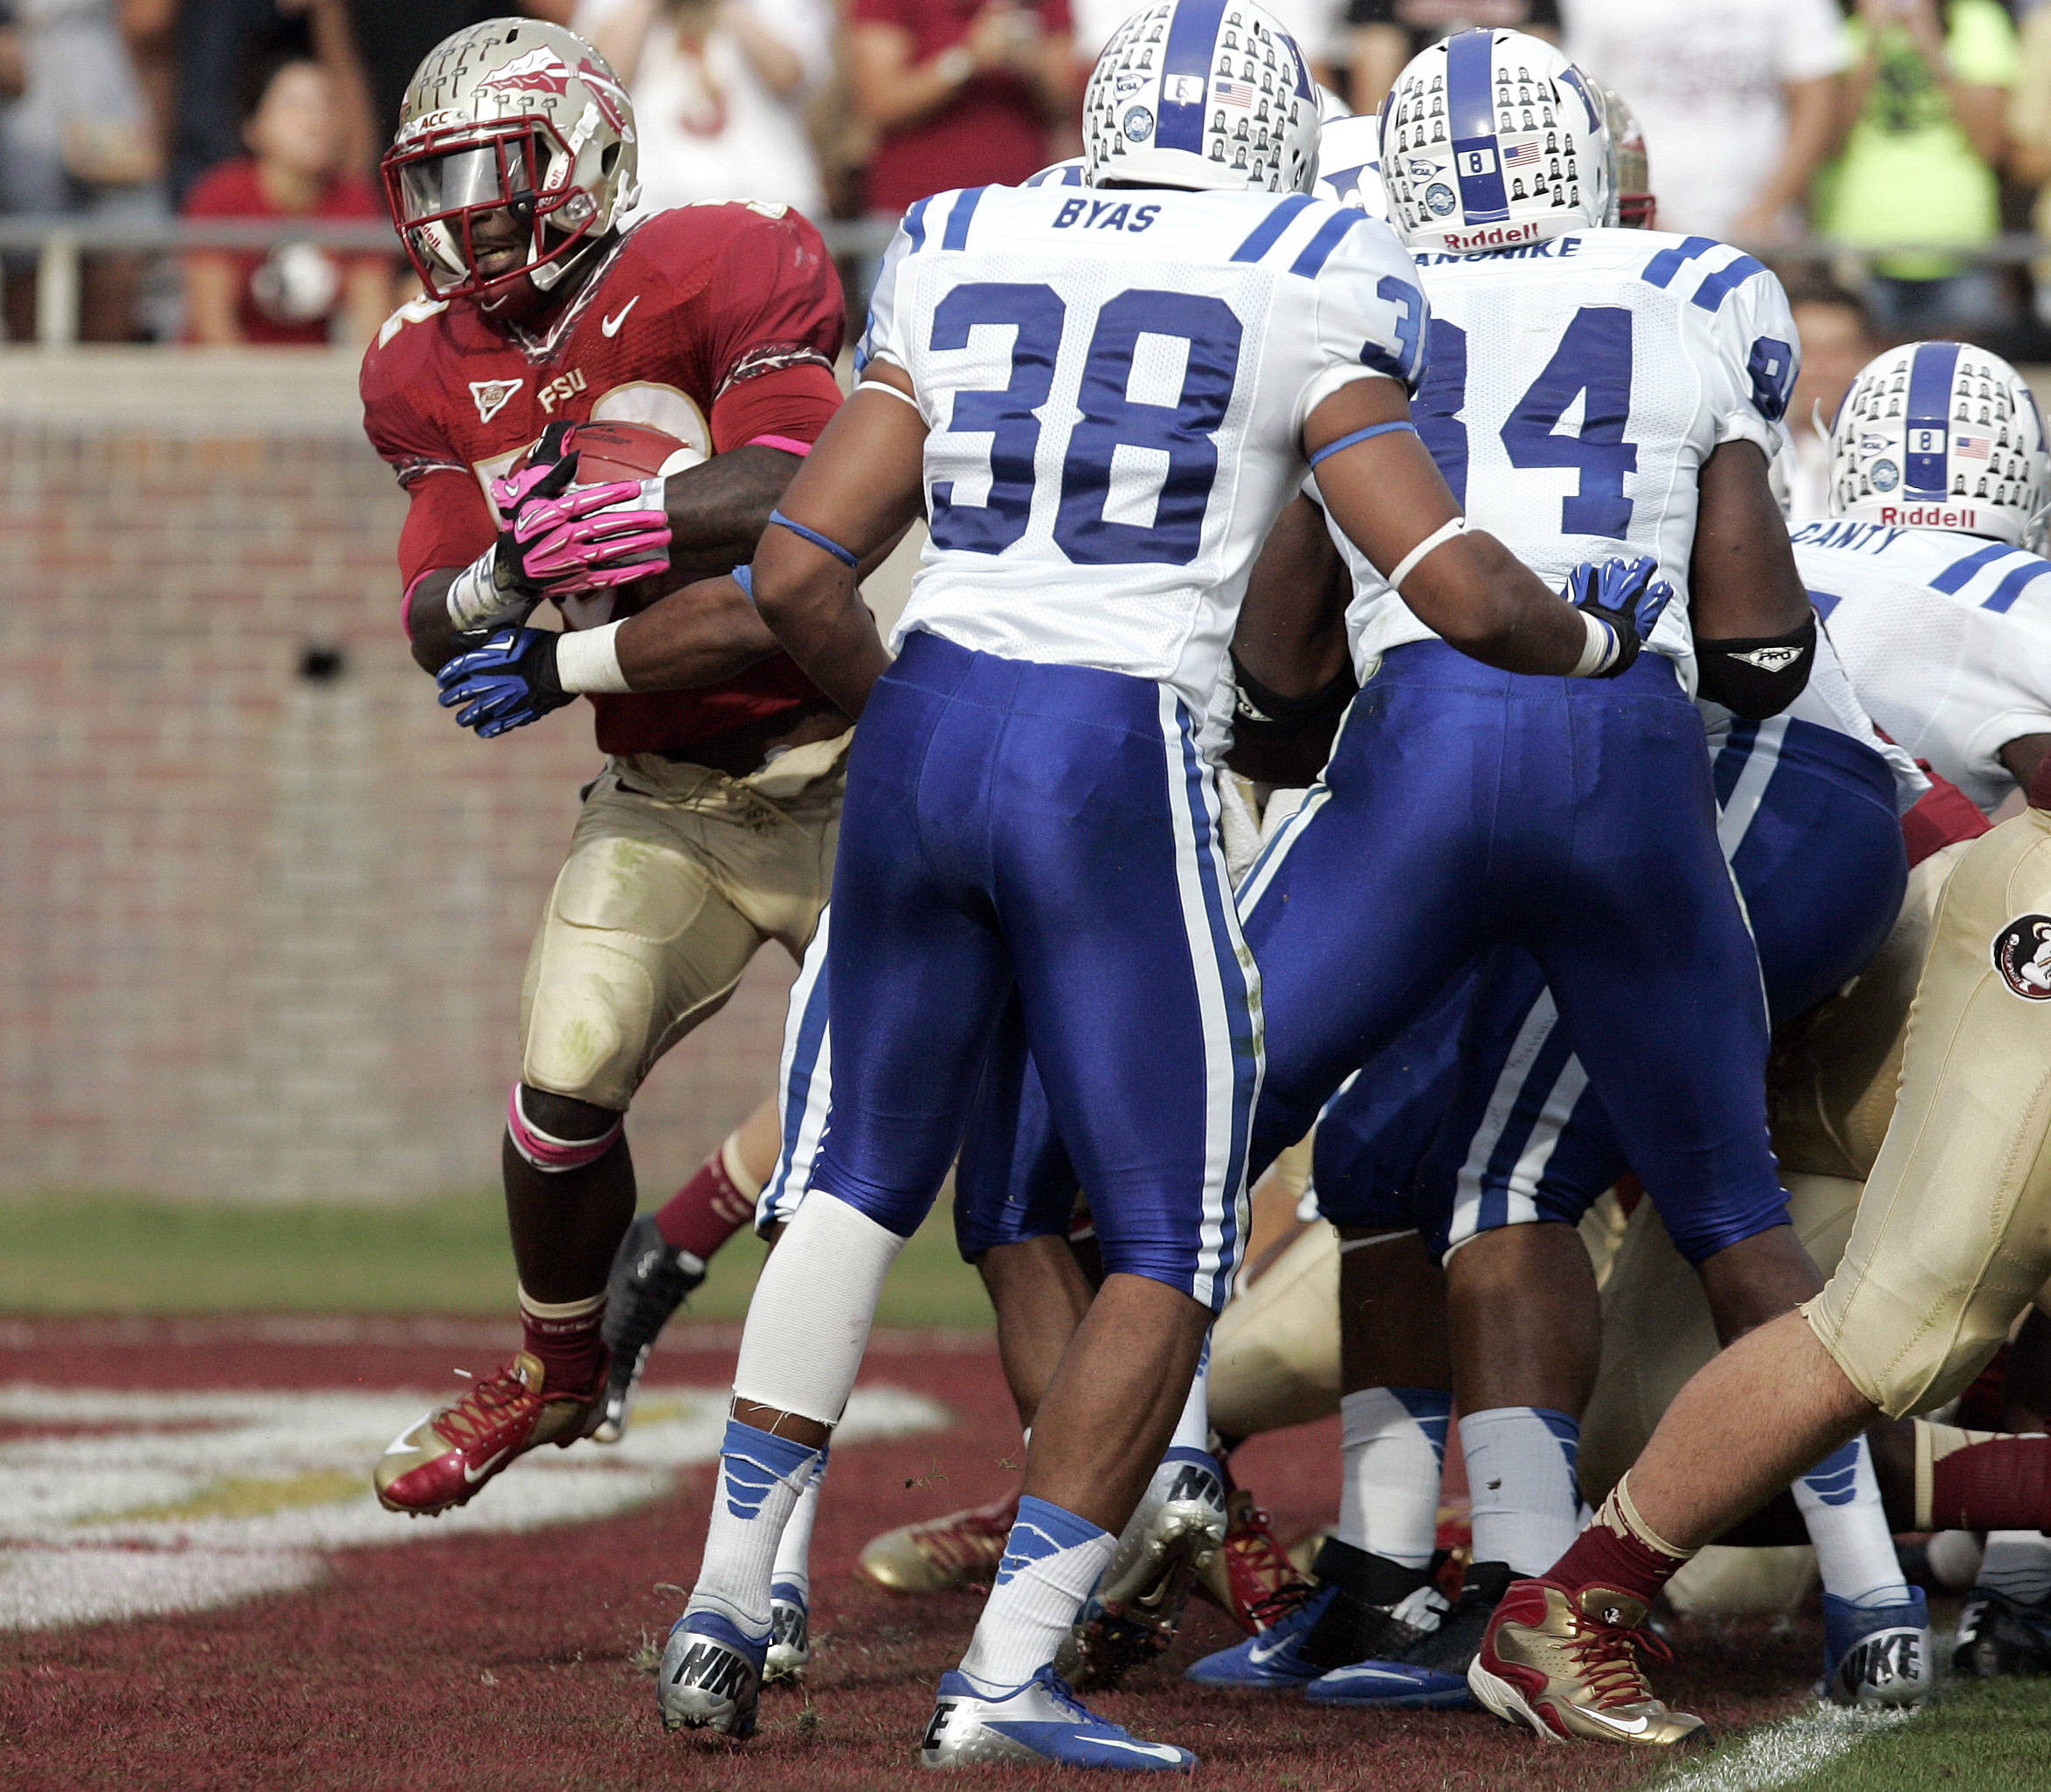 Florida State's James Wilder Jr. pushes through Duke's defense to score in the second quarter. (AP Photo/Steve Cannon)